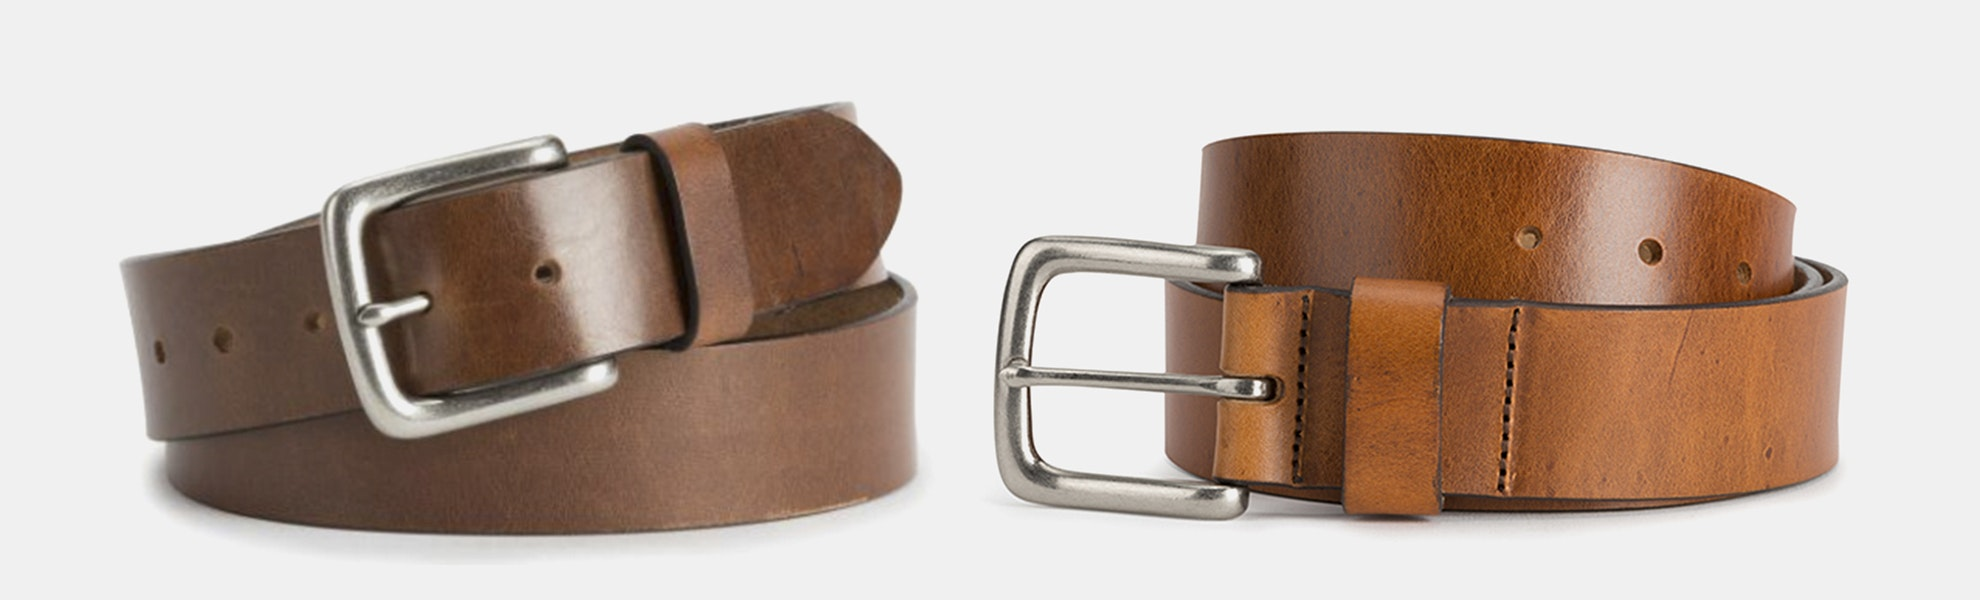 Brothers Leather Supply Co. Belt